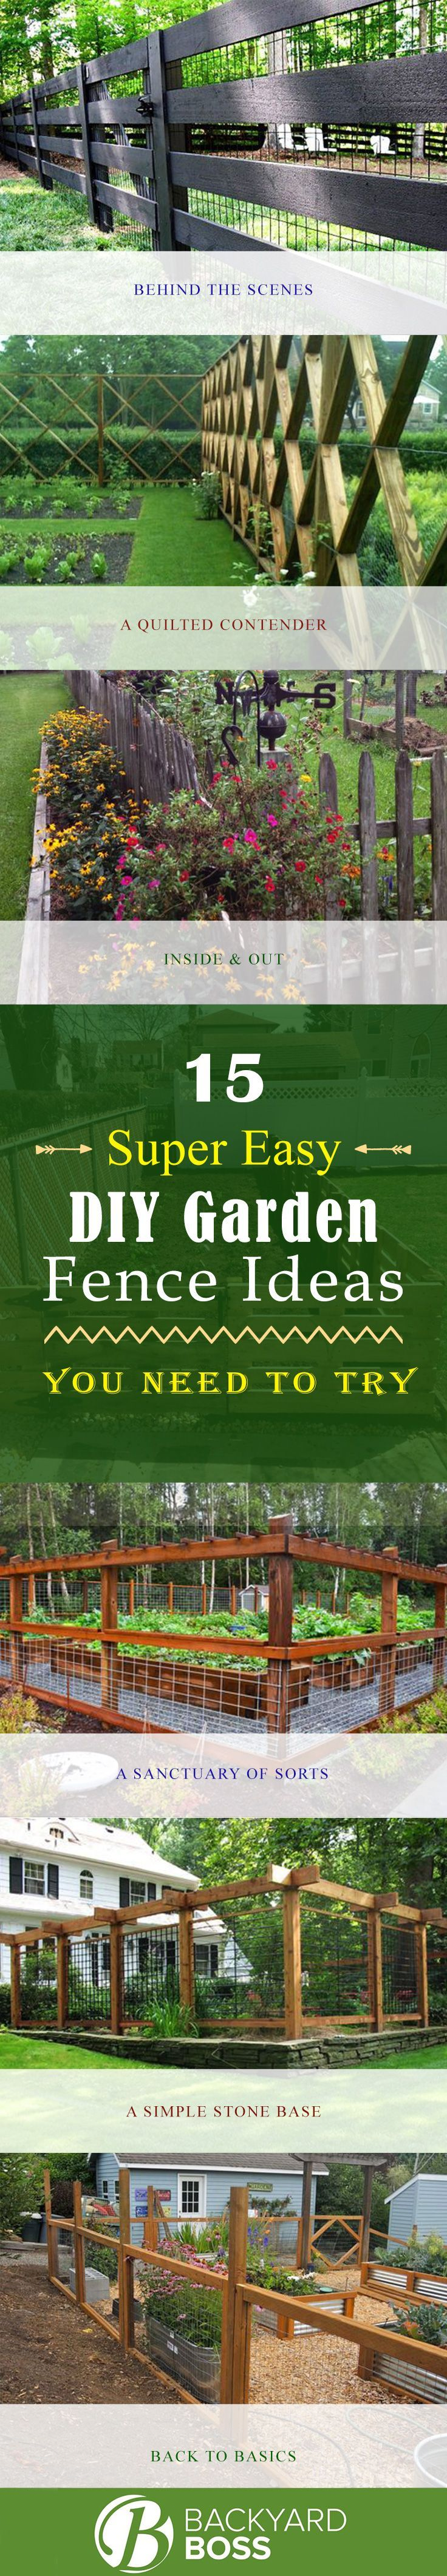 15 Super Easy DIY Garden Fence Ideas You Need to Try